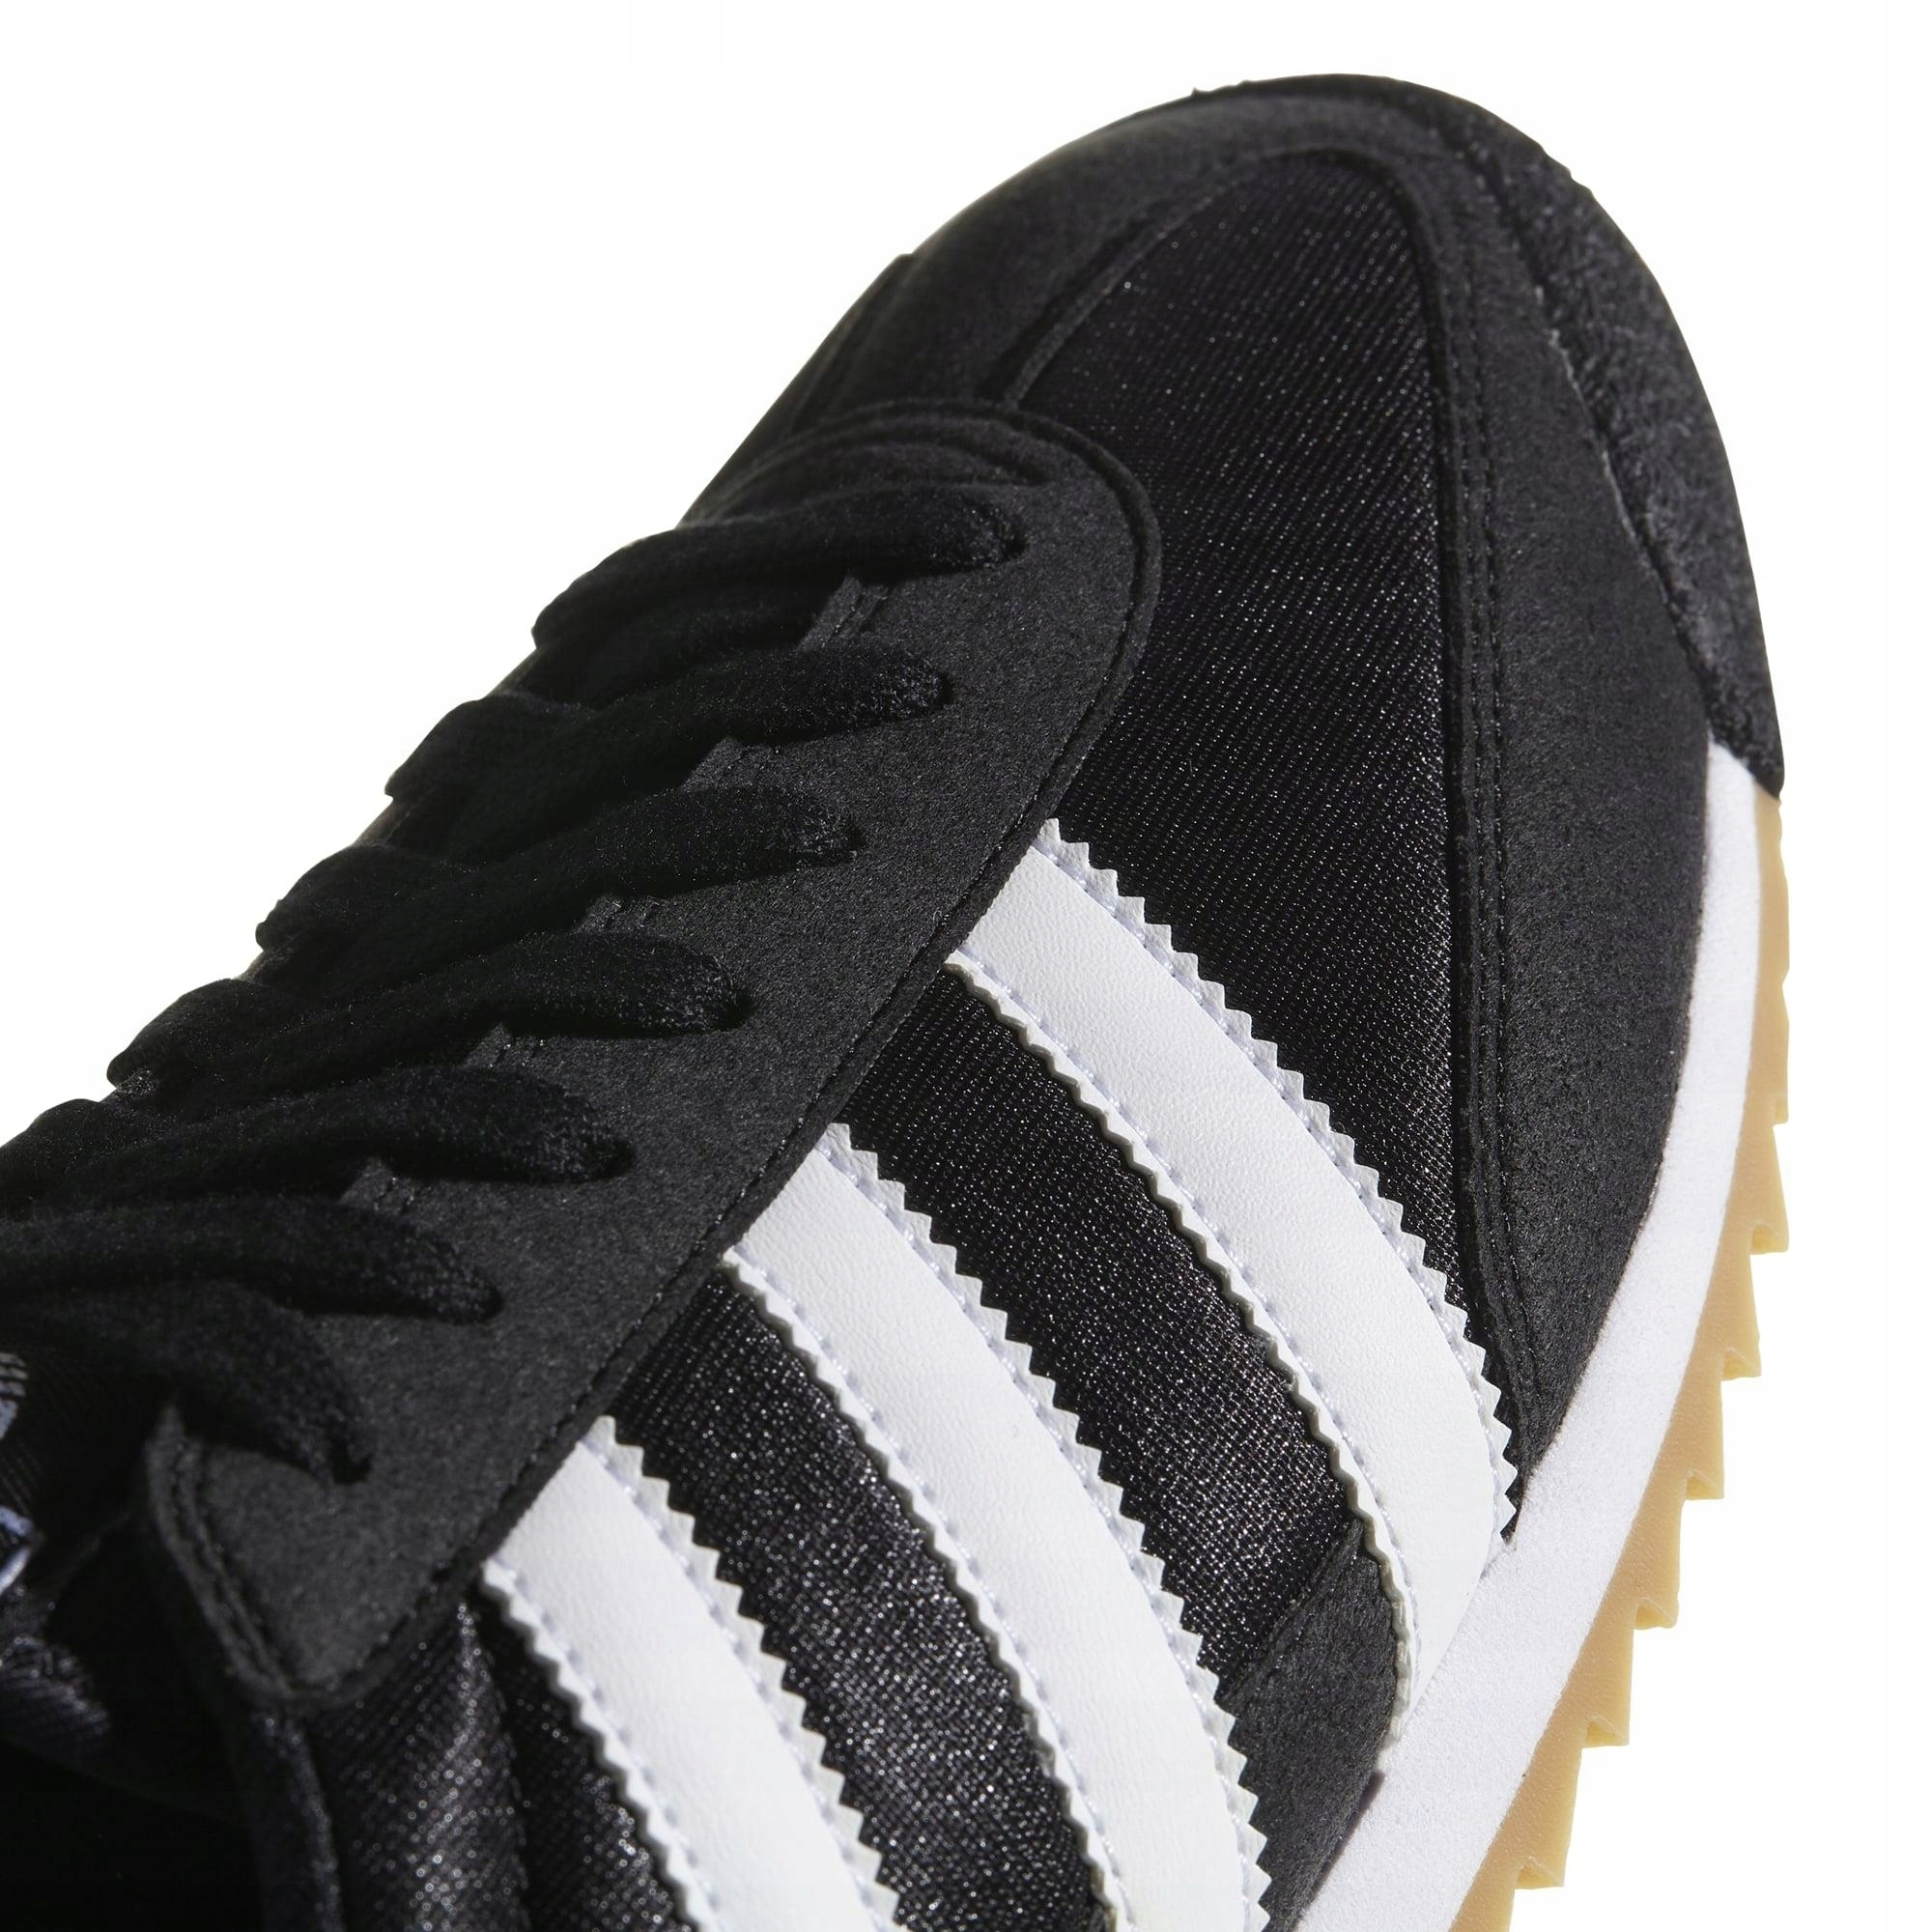 buy online 2d81c 93e87 BUTY ADIDAS DRAGON OG SHOES BB1266 r 43 13 (7483219259)